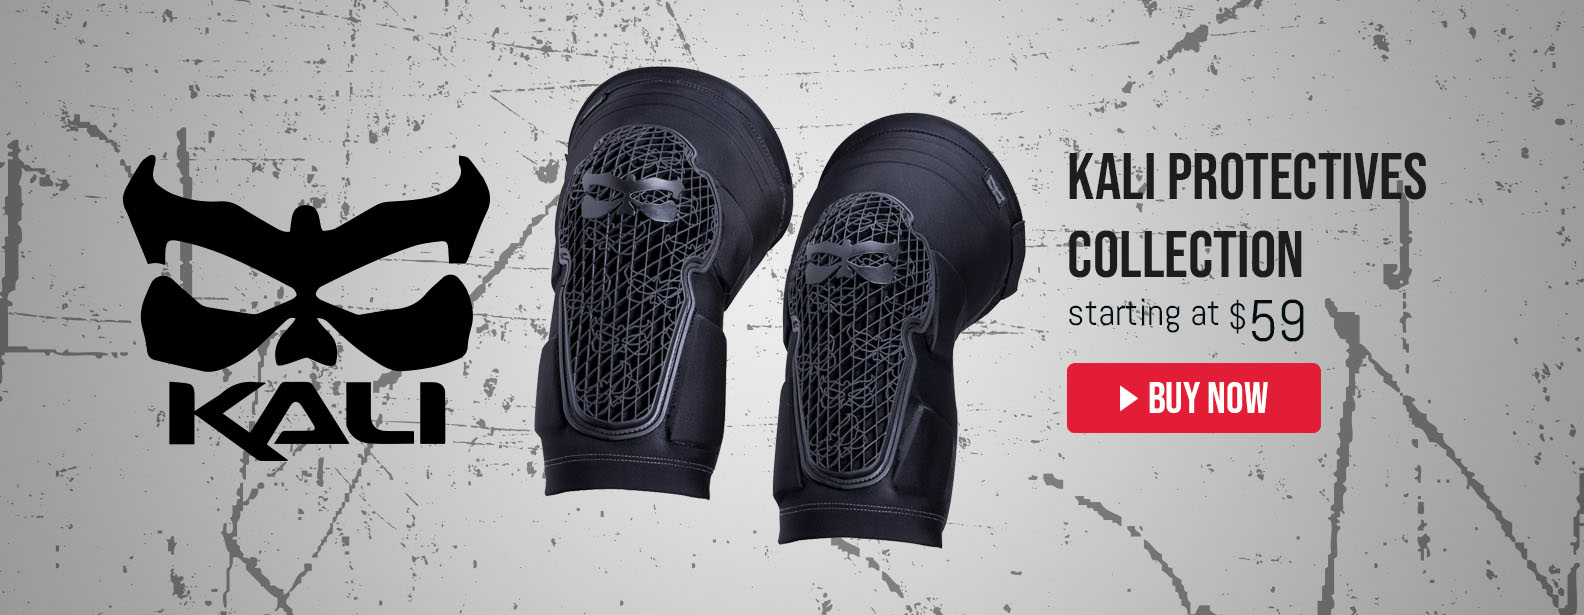 Kali Protectives Collection